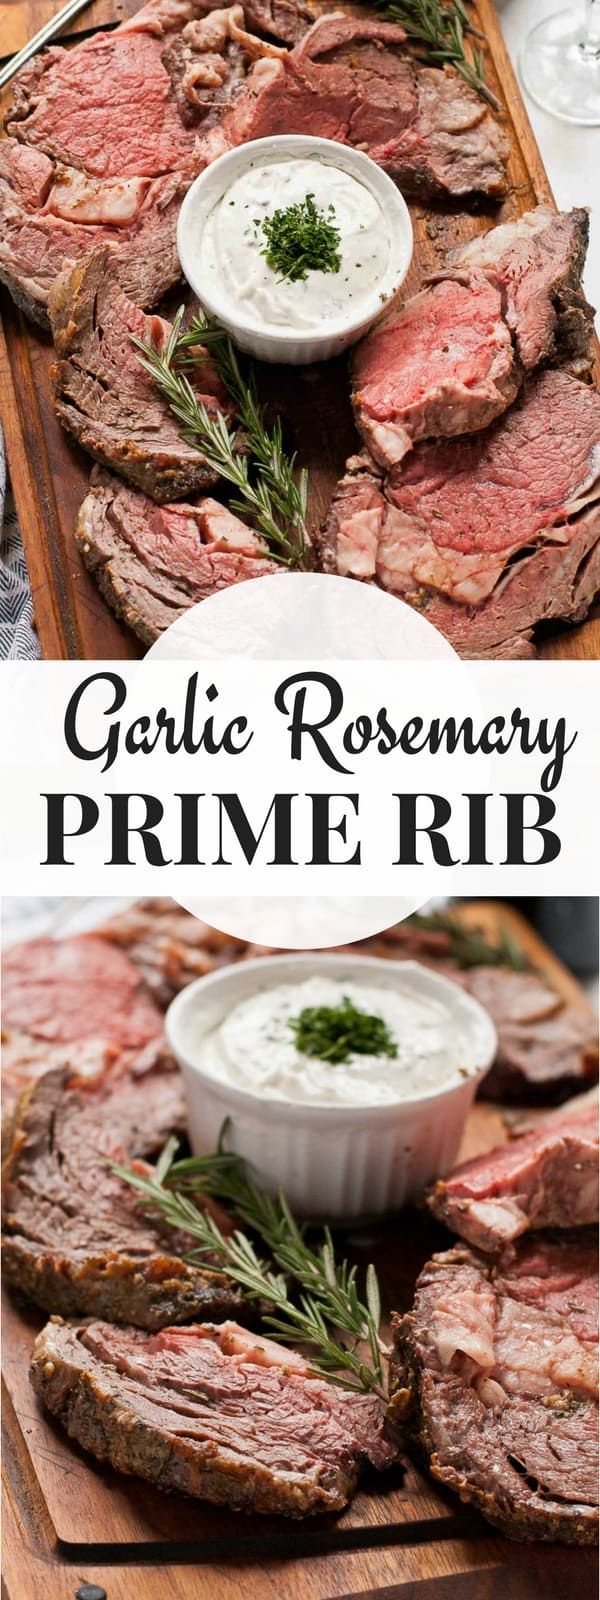 This Rosemary and Garlic Prime Rib Roast is a show stopping holiday dinner! Served with a creamy horseradish sauce, this rib roast will have everyone begging for more!